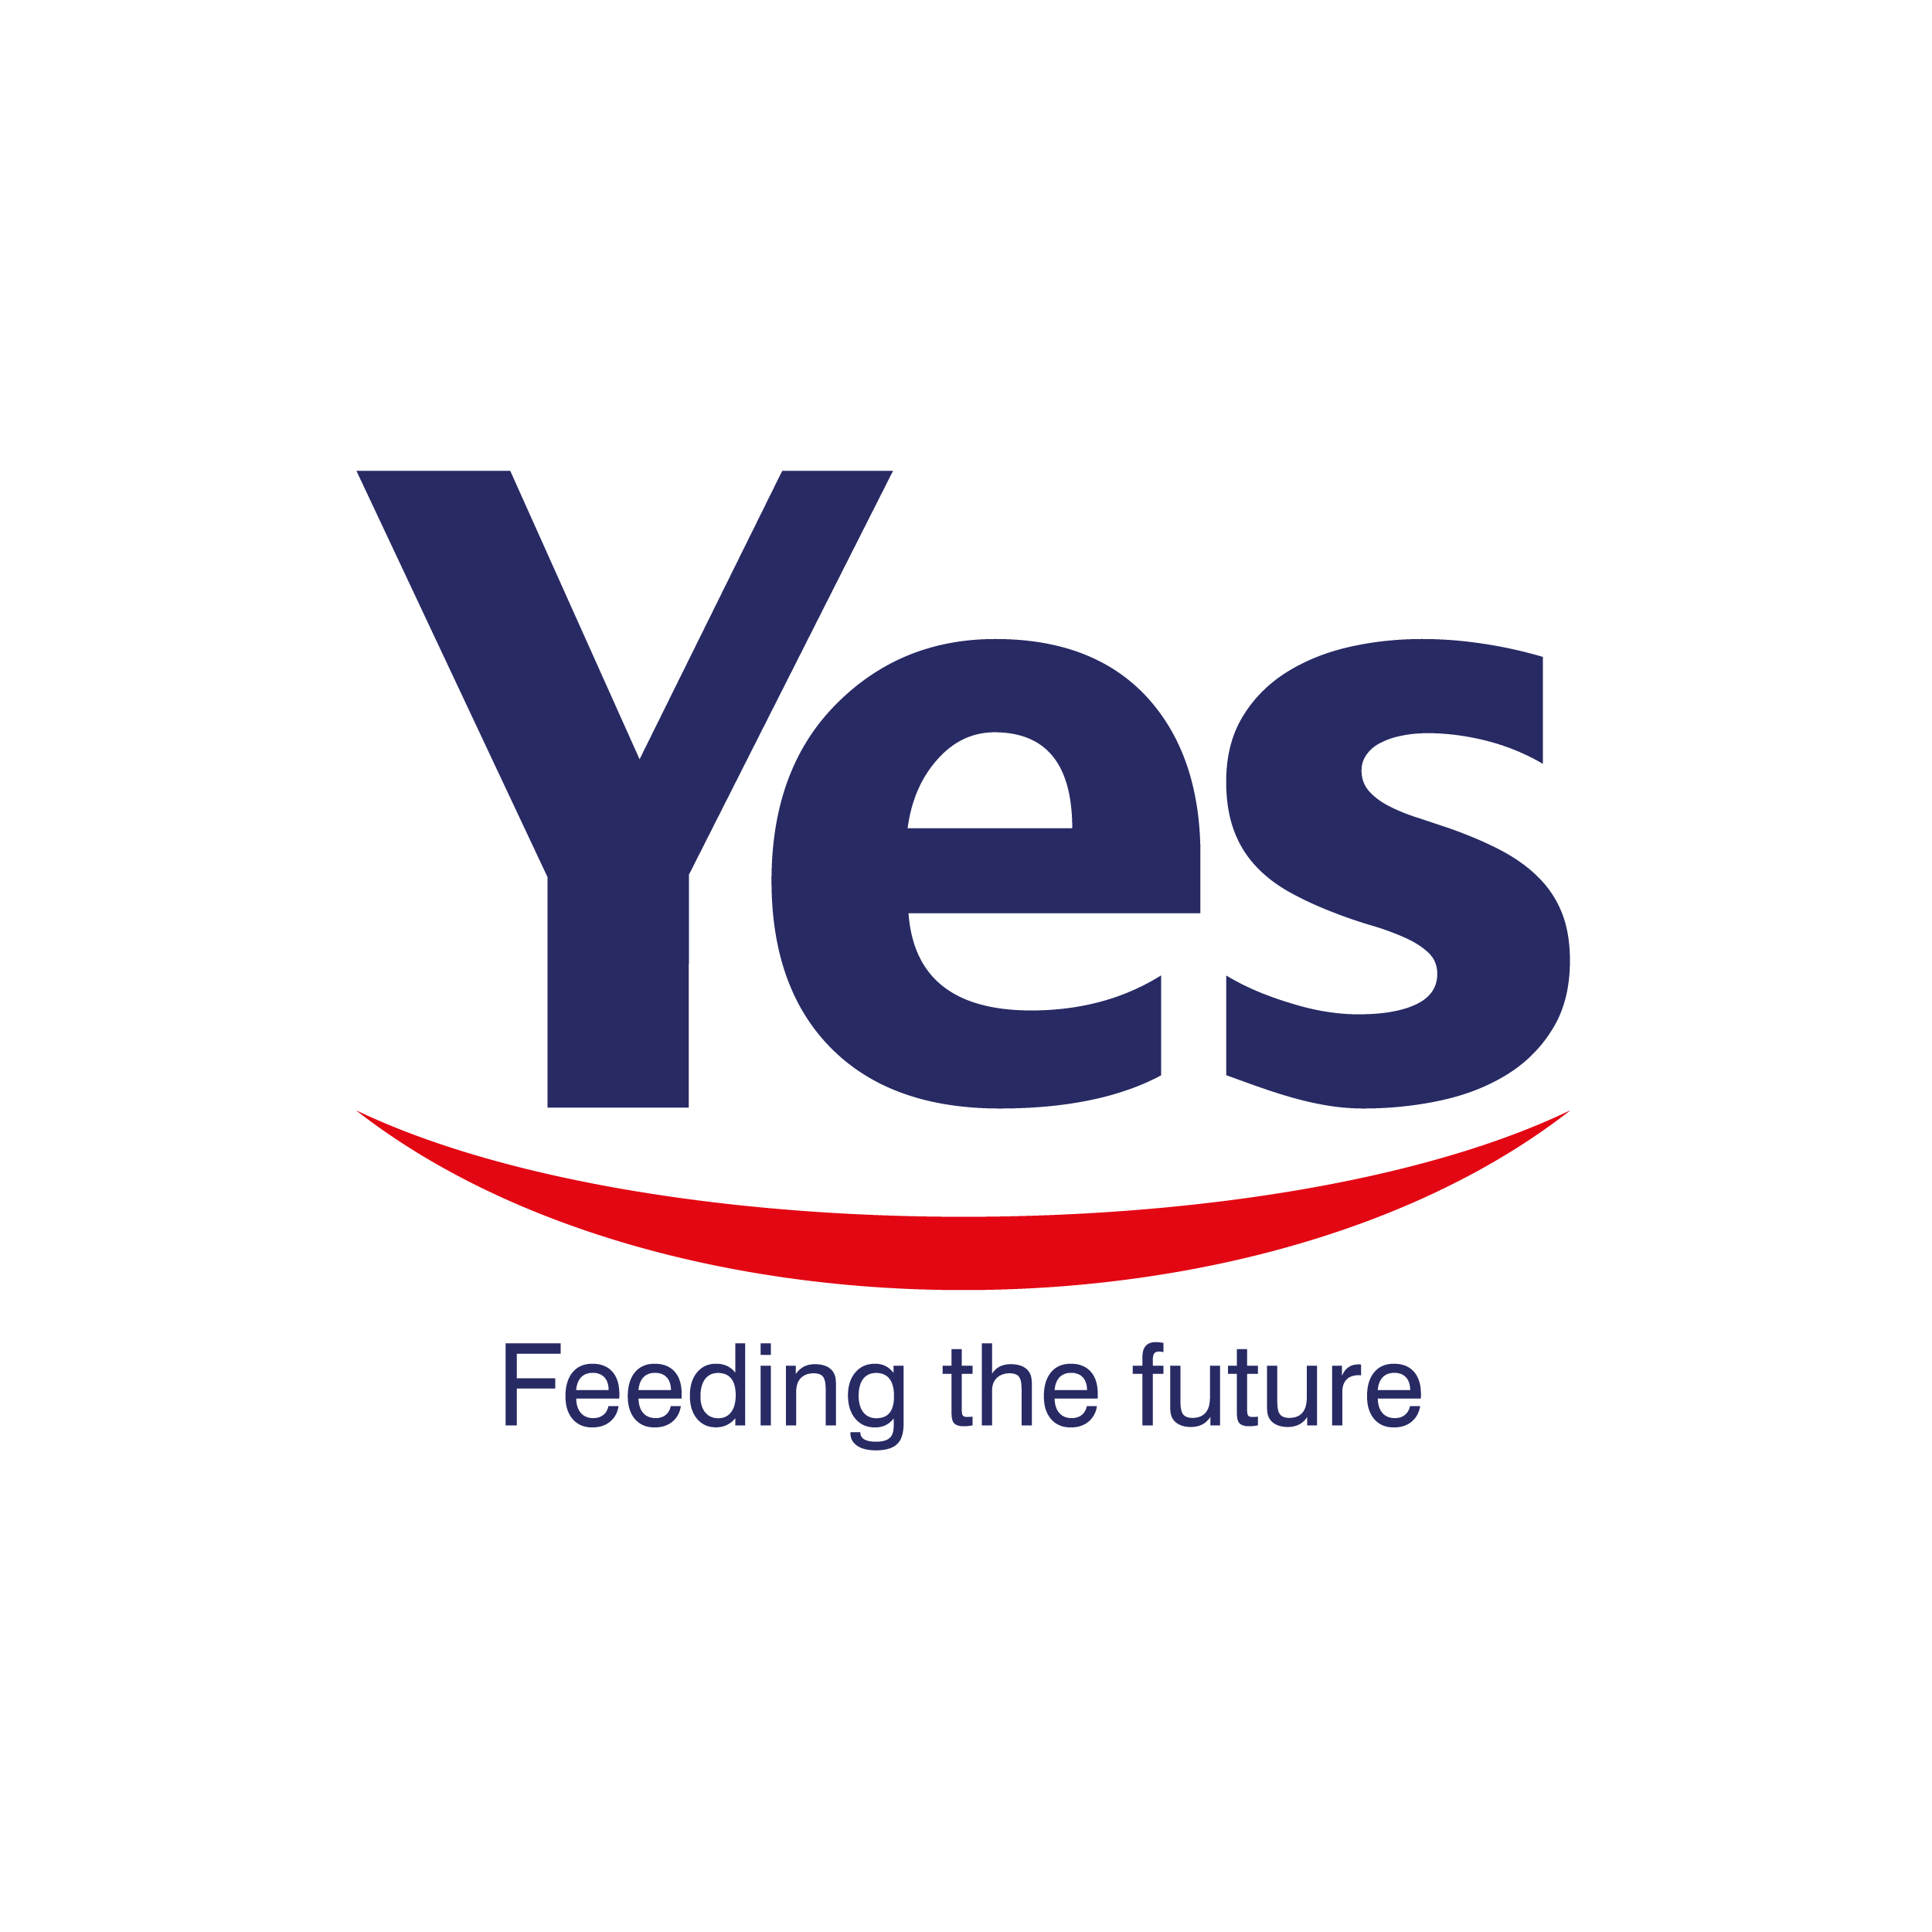 Yes - Feeding the future